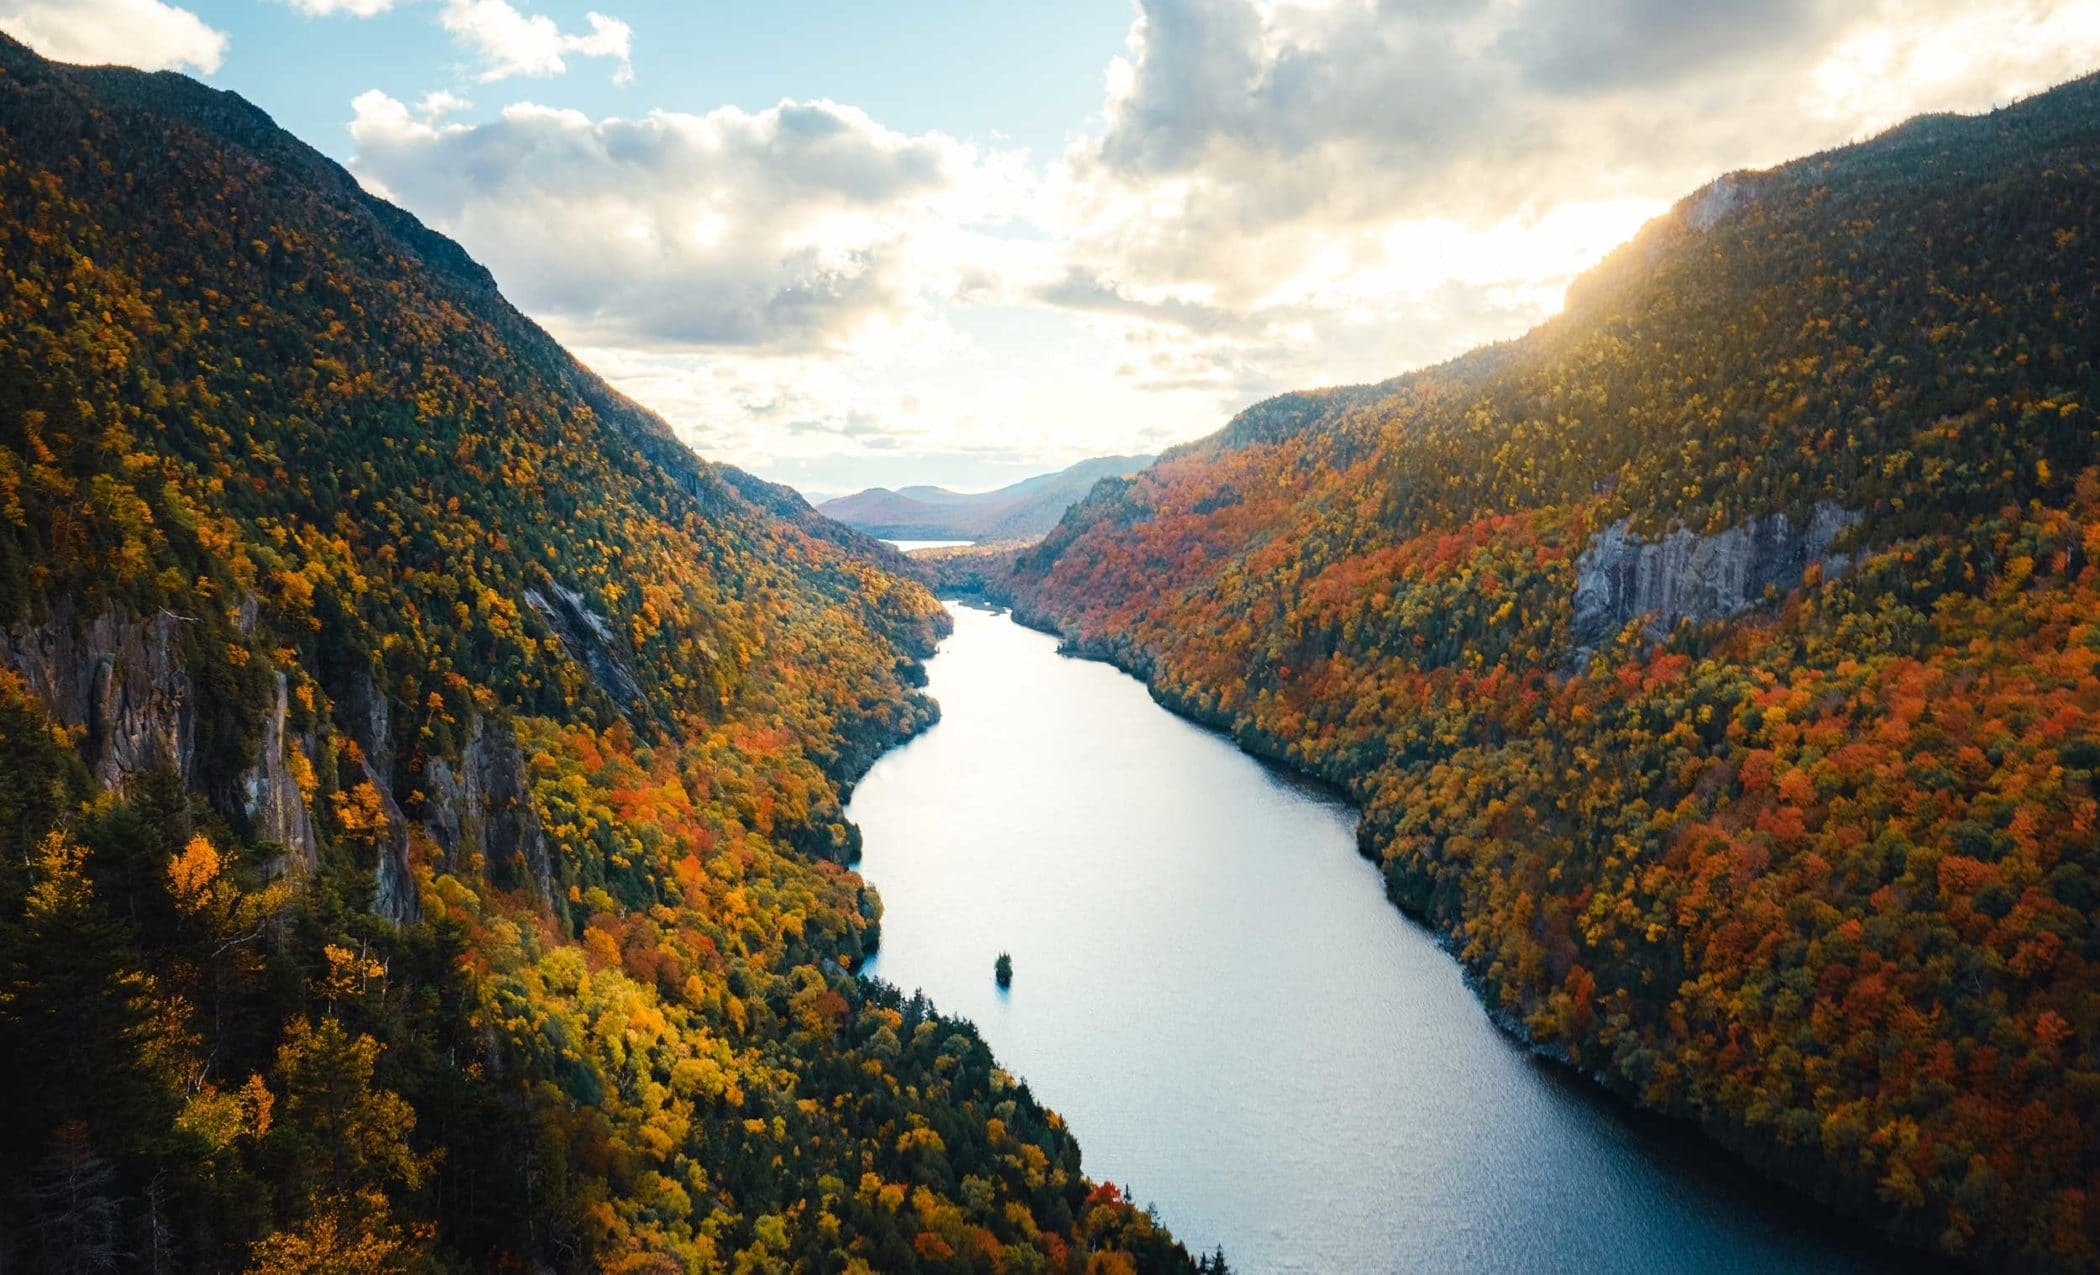 View of Lower Ausable Lake from Fish Hawk Cliffs, Keen Valley, Adirondacks